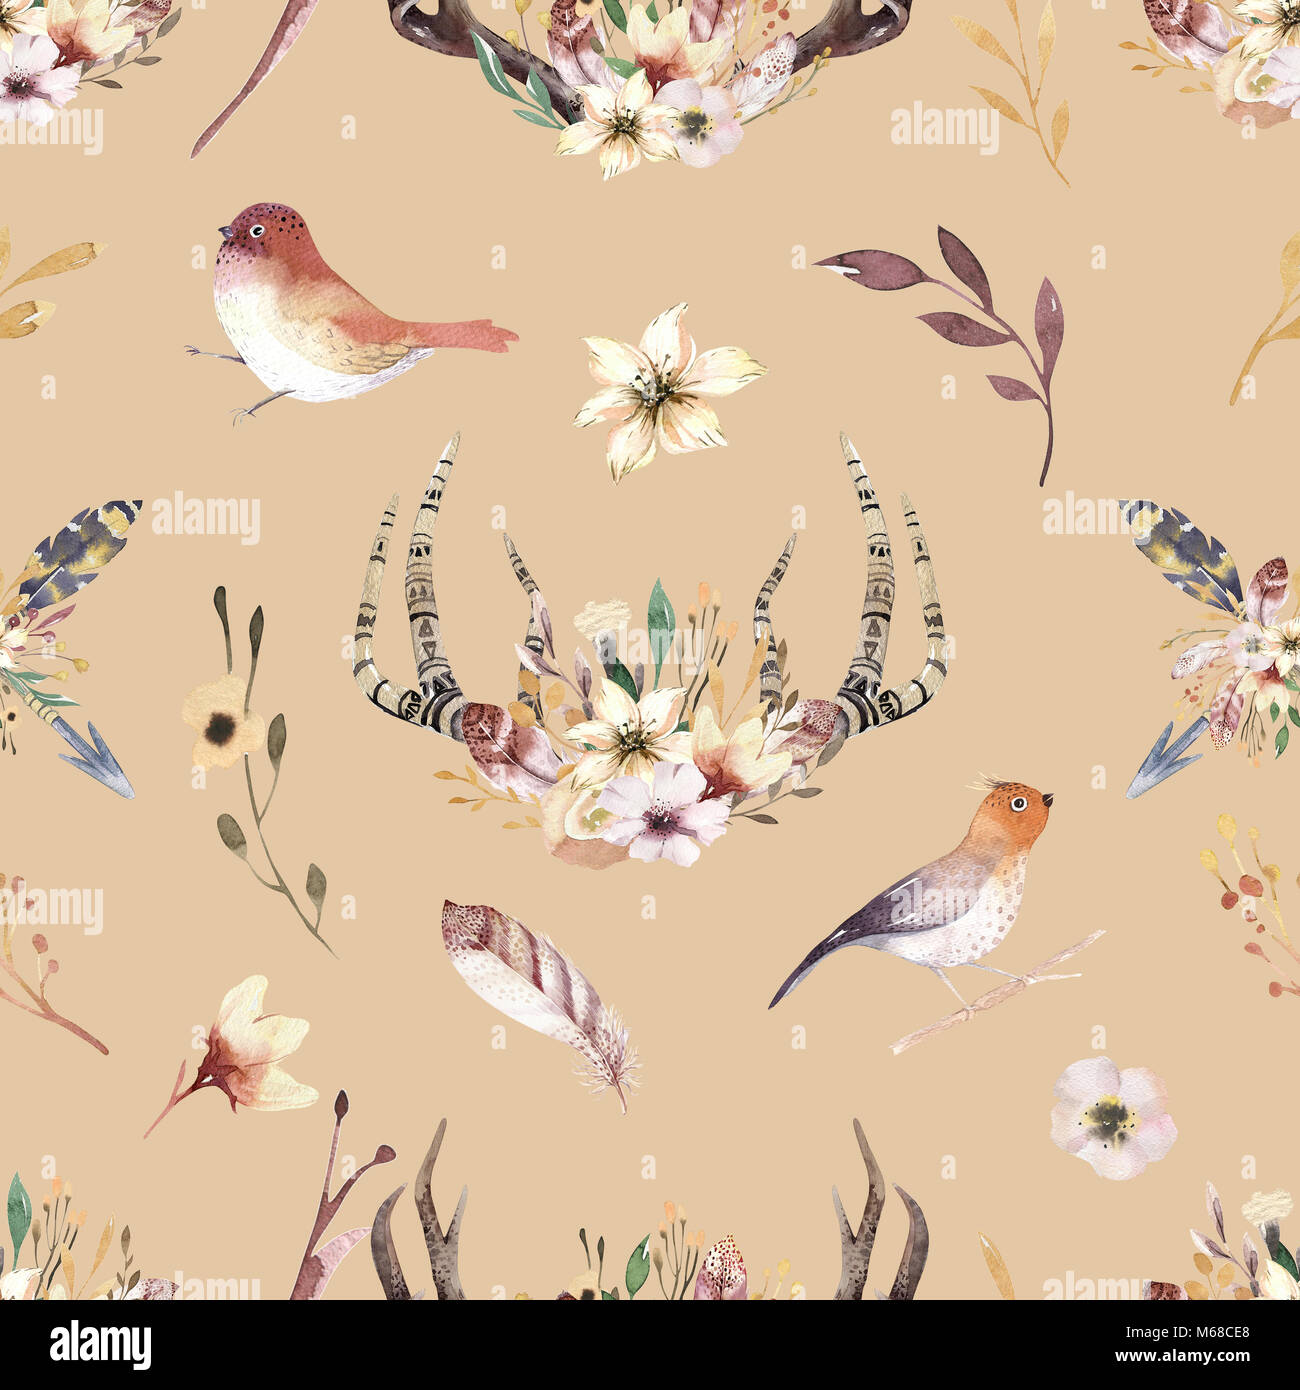 59587e62a Bohemiamn seamless pattern of watercolor floral boho antler print. western  boho decoration. Hand drawn vintage deer horns with flowers, leaves and her